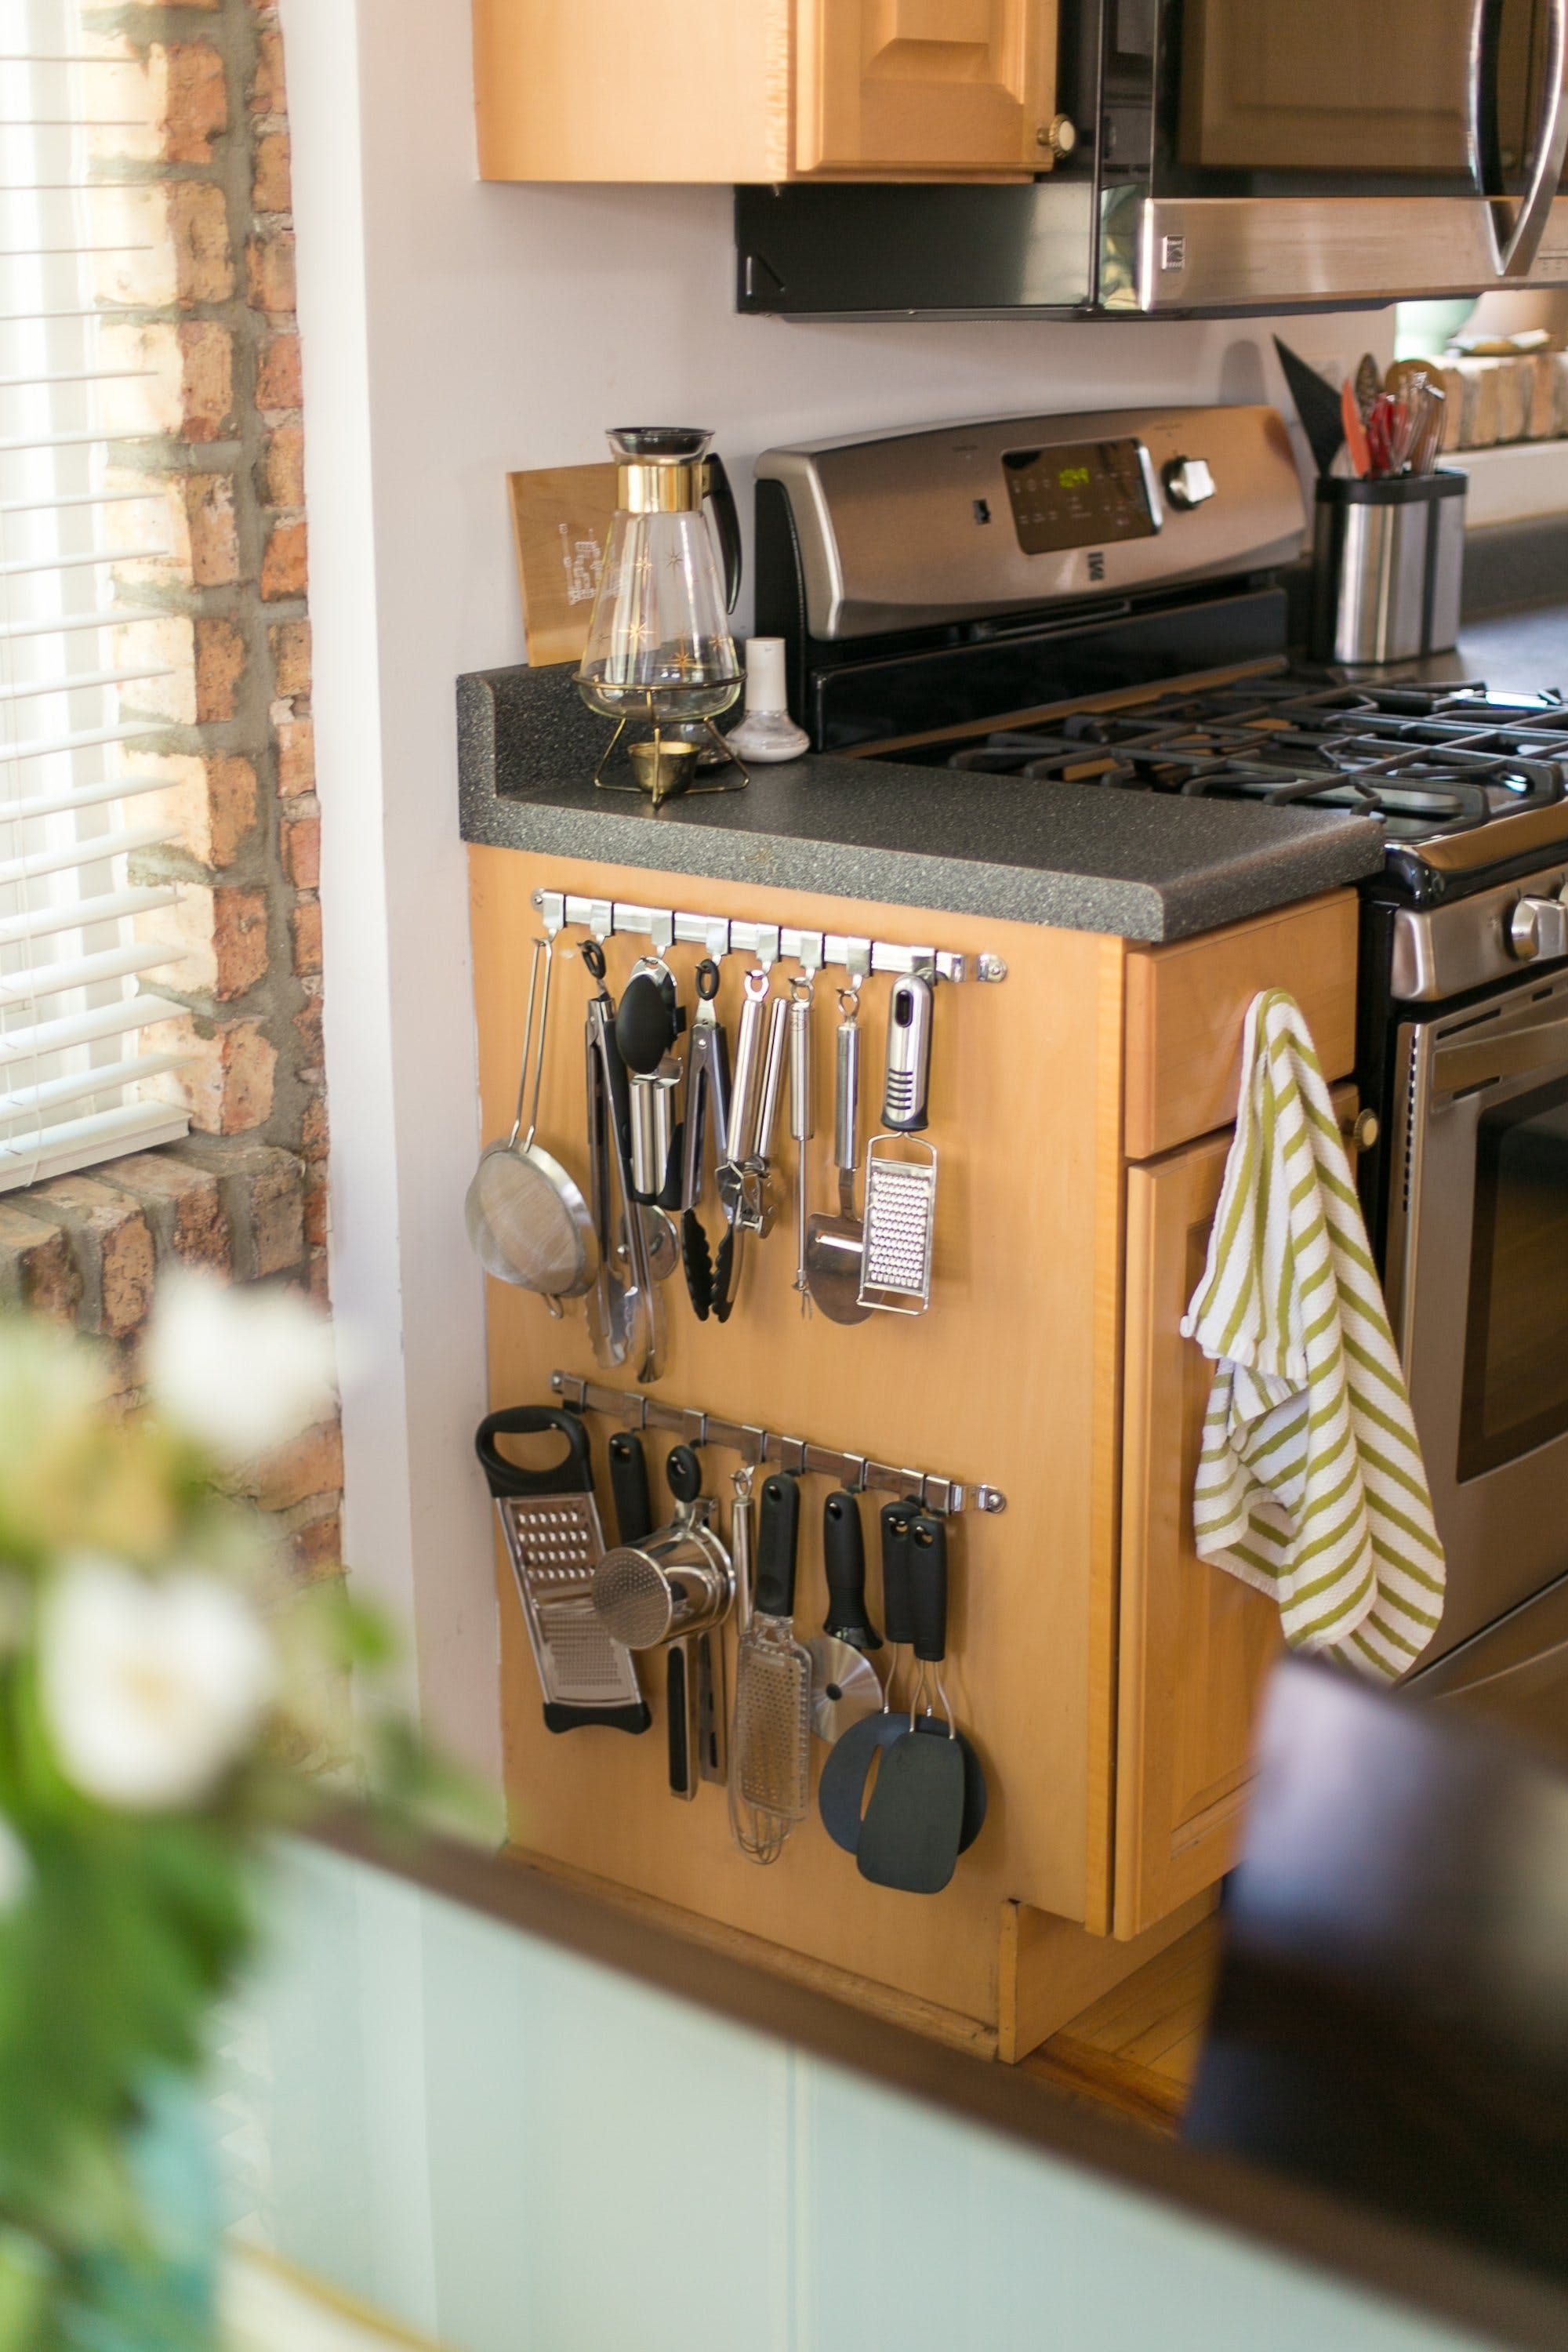 Captivating No Counter Space? Solutions For A Clean And Clutter Free Kitchen Sink Zone